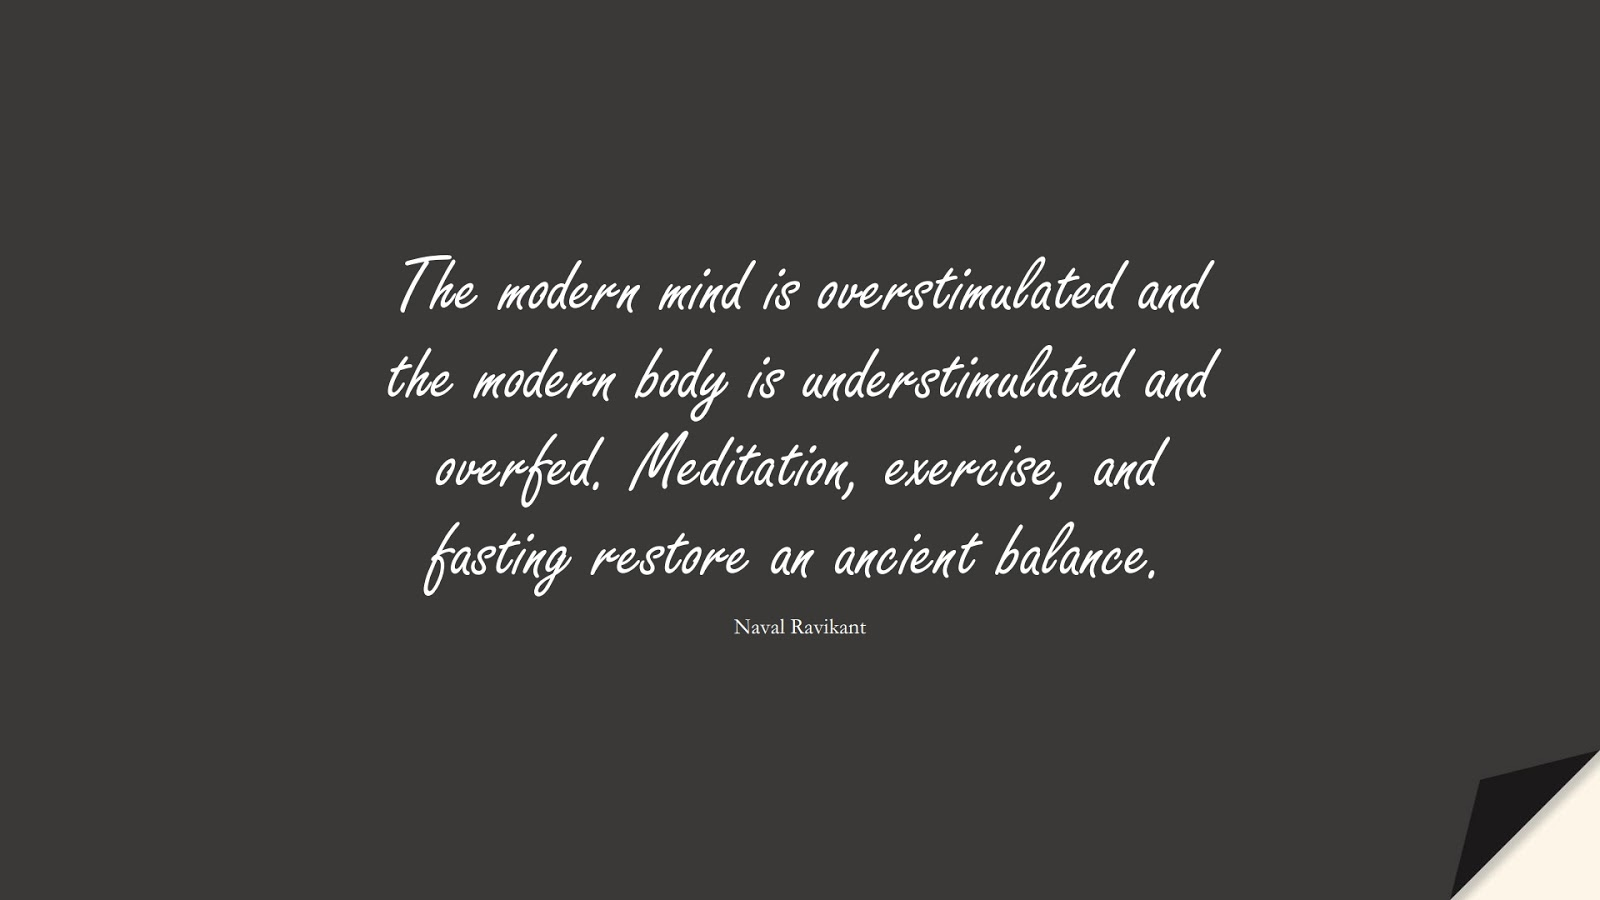 The modern mind is overstimulated and the modern body is understimulated and overfed. Meditation, exercise, and fasting restore an ancient balance. (Naval Ravikant);  #BestQuotes